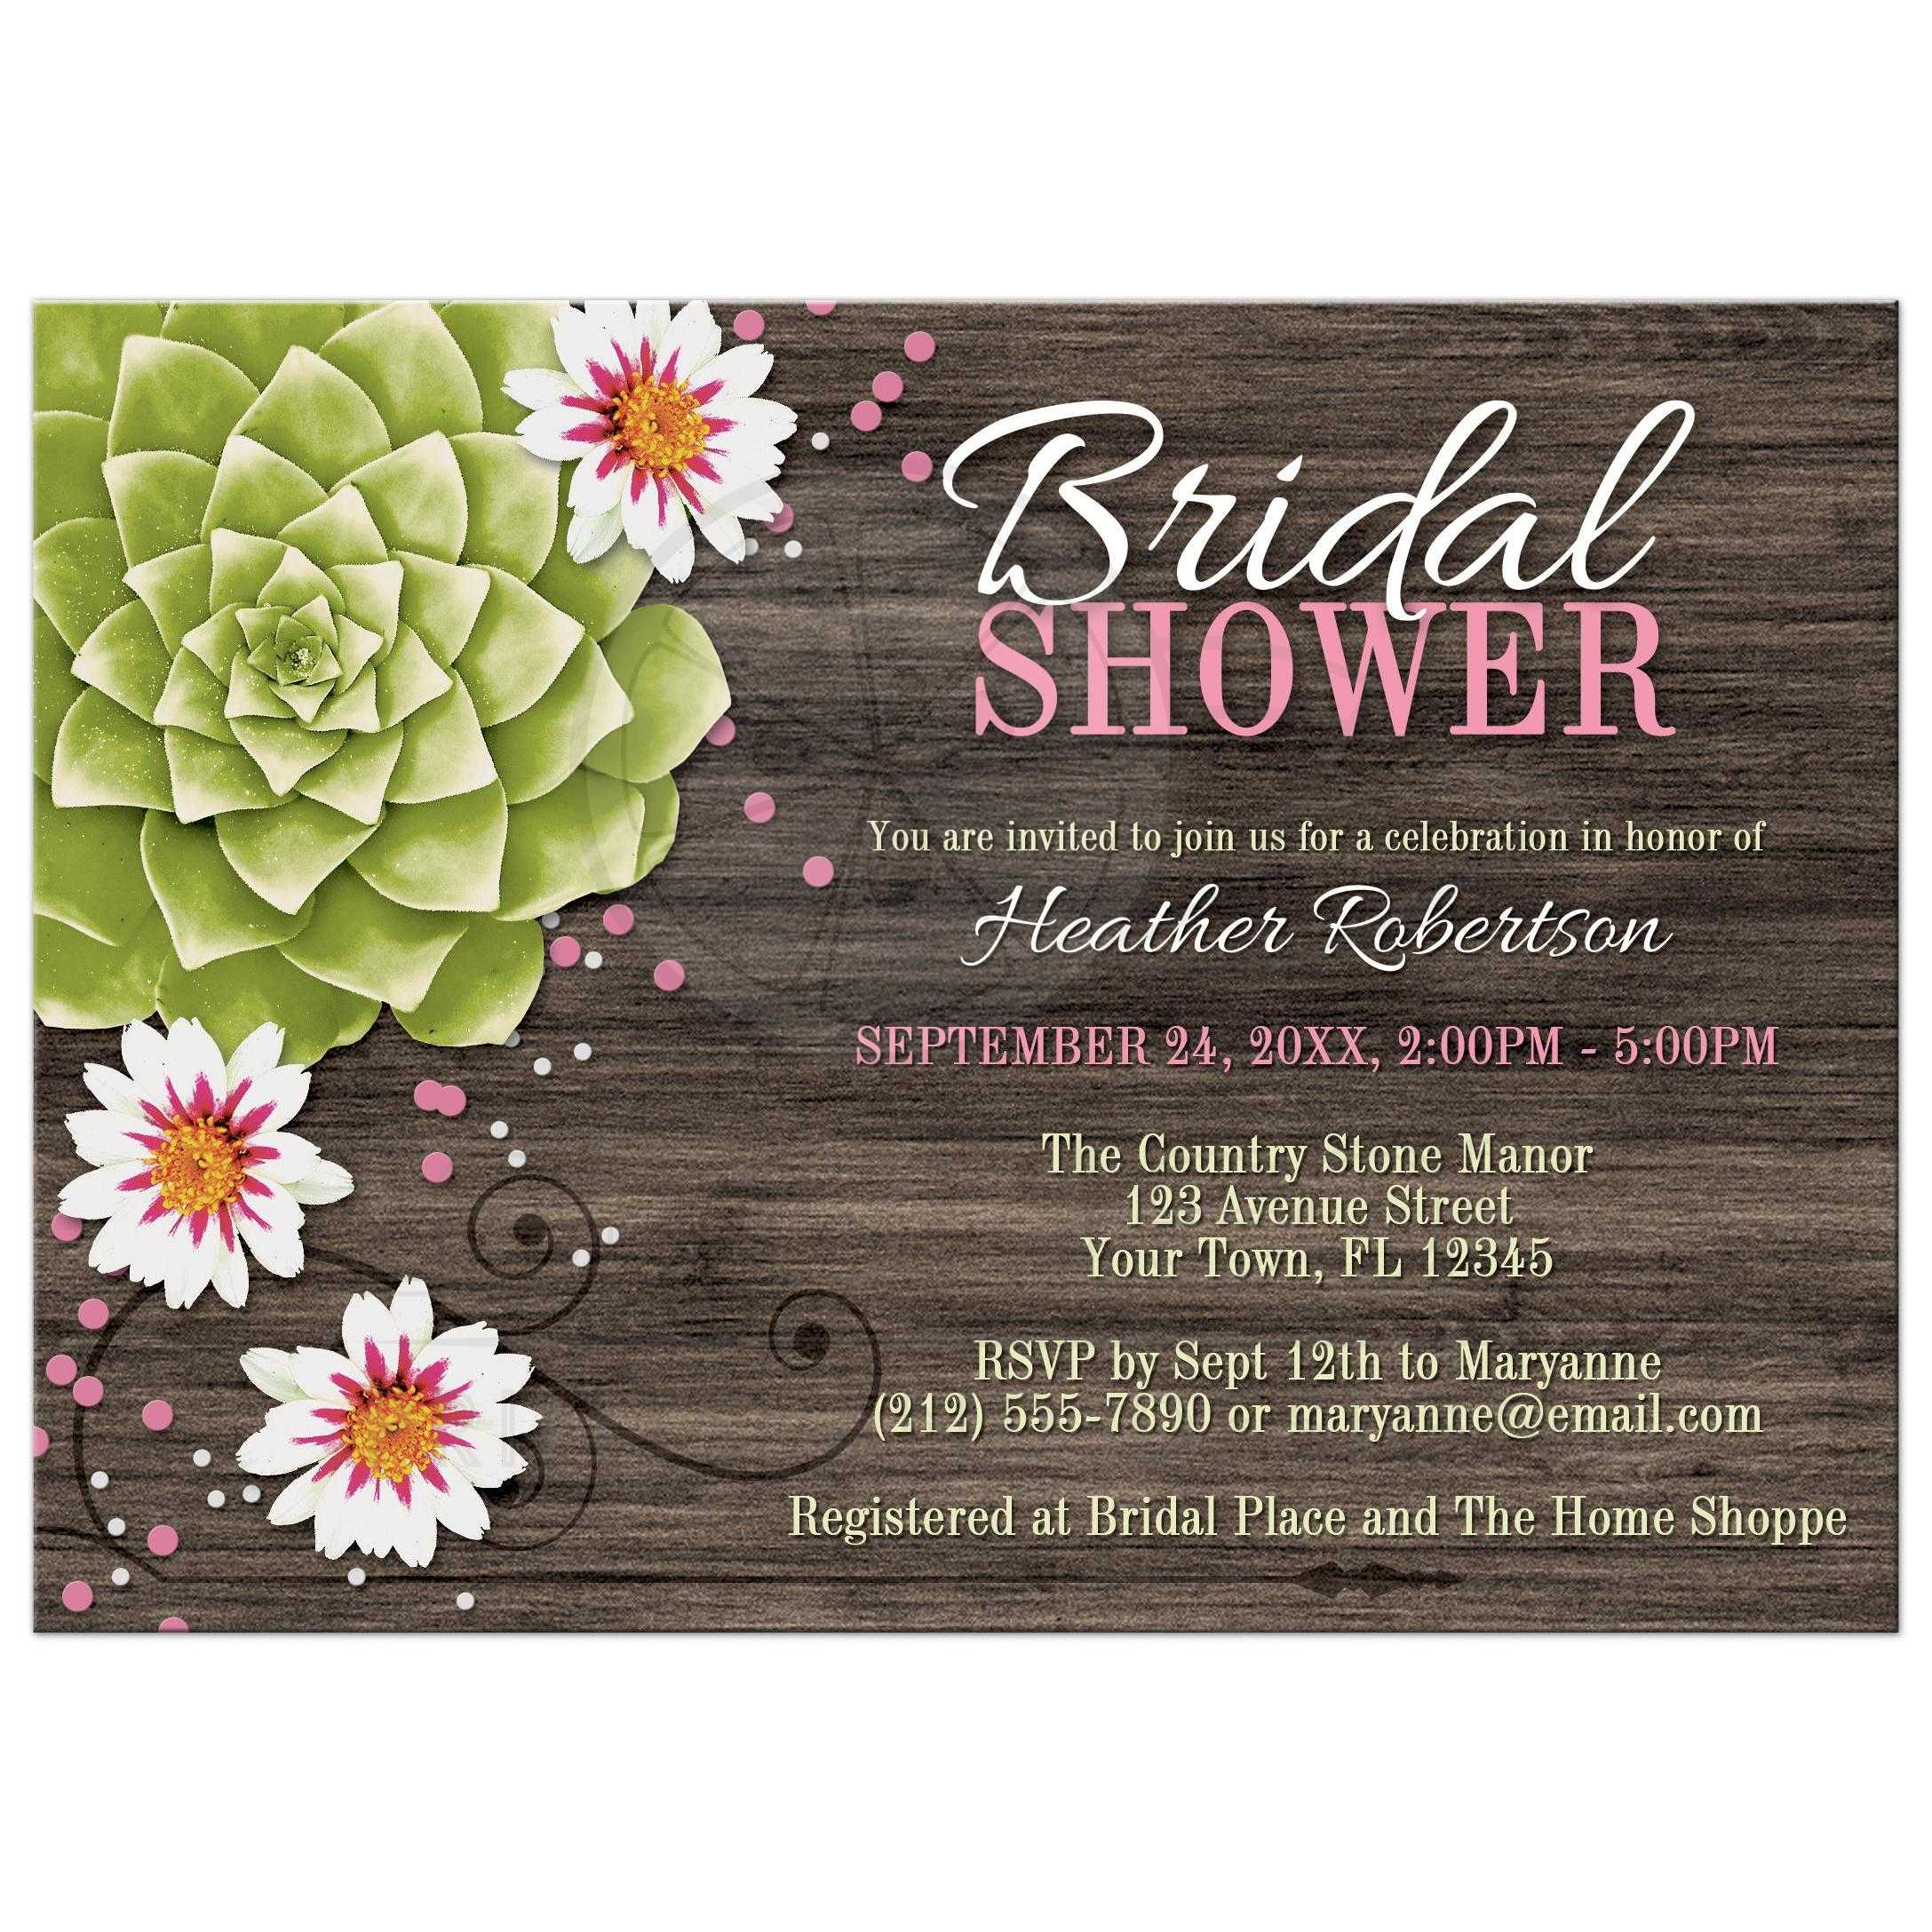 Bridal Shower Invitations Rustic Succulent Floral Wood Pink